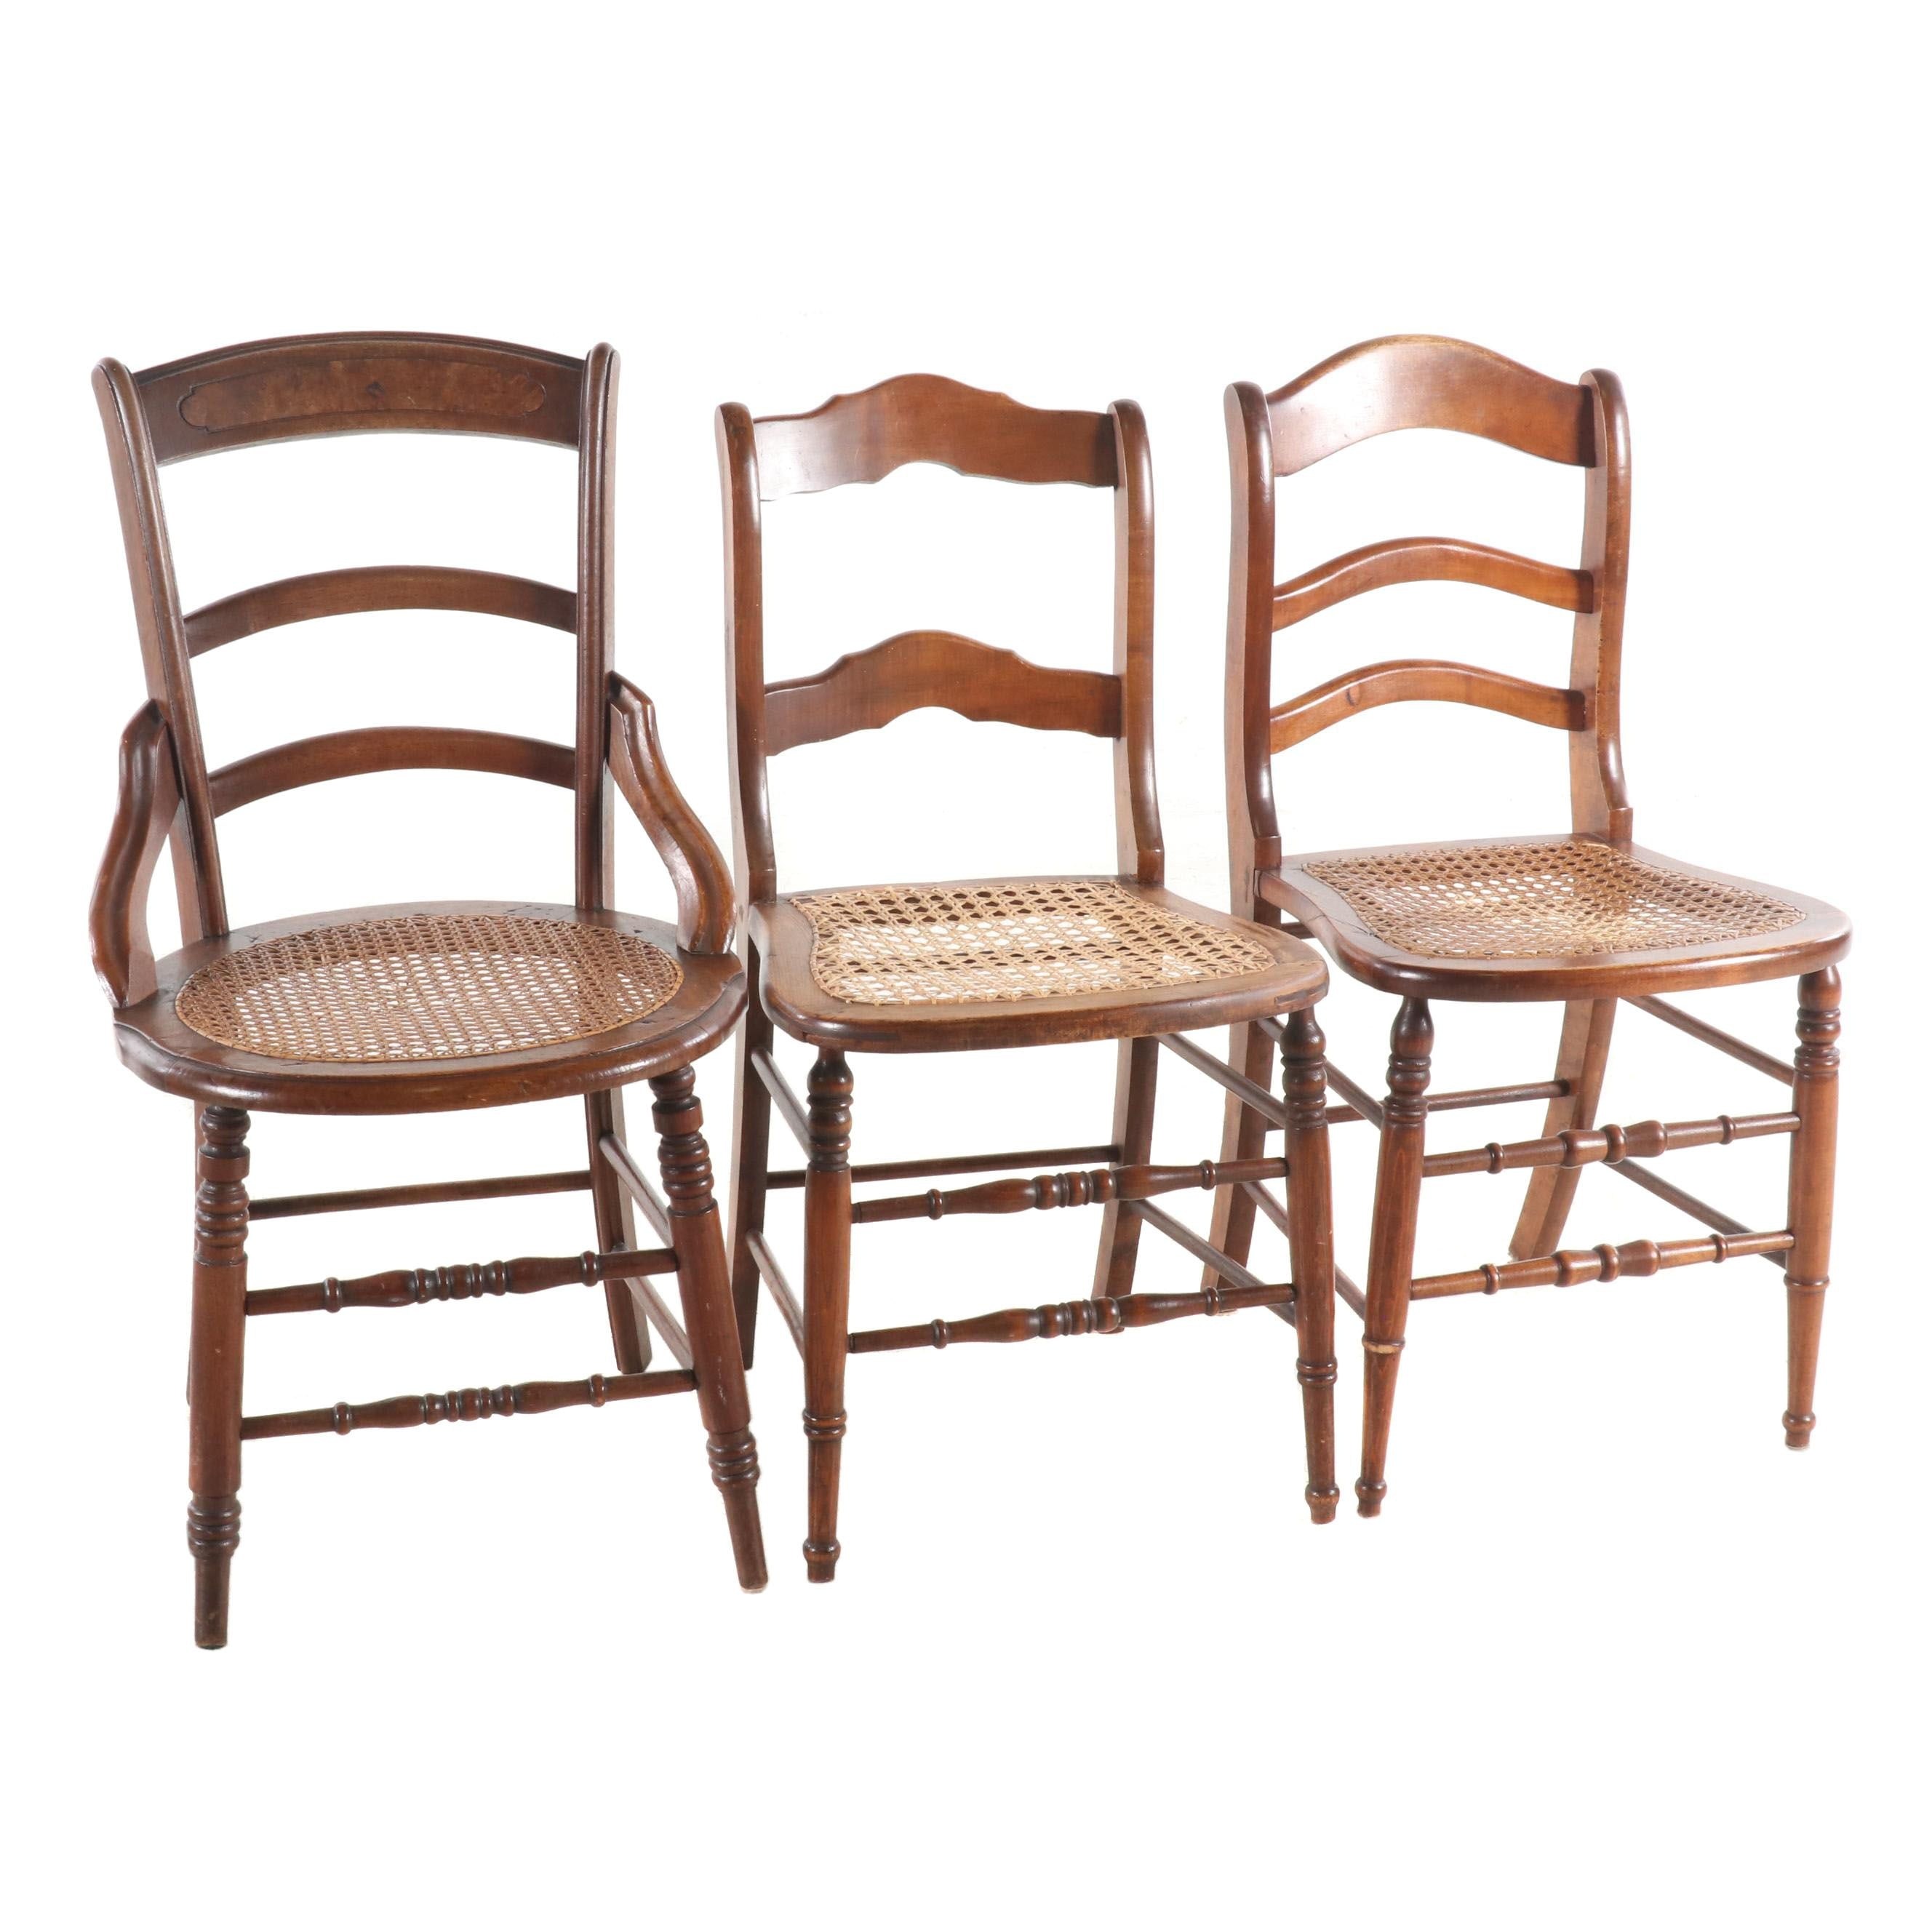 Caned-Seat Wooden Side Chair Grouping, Early 20th Century